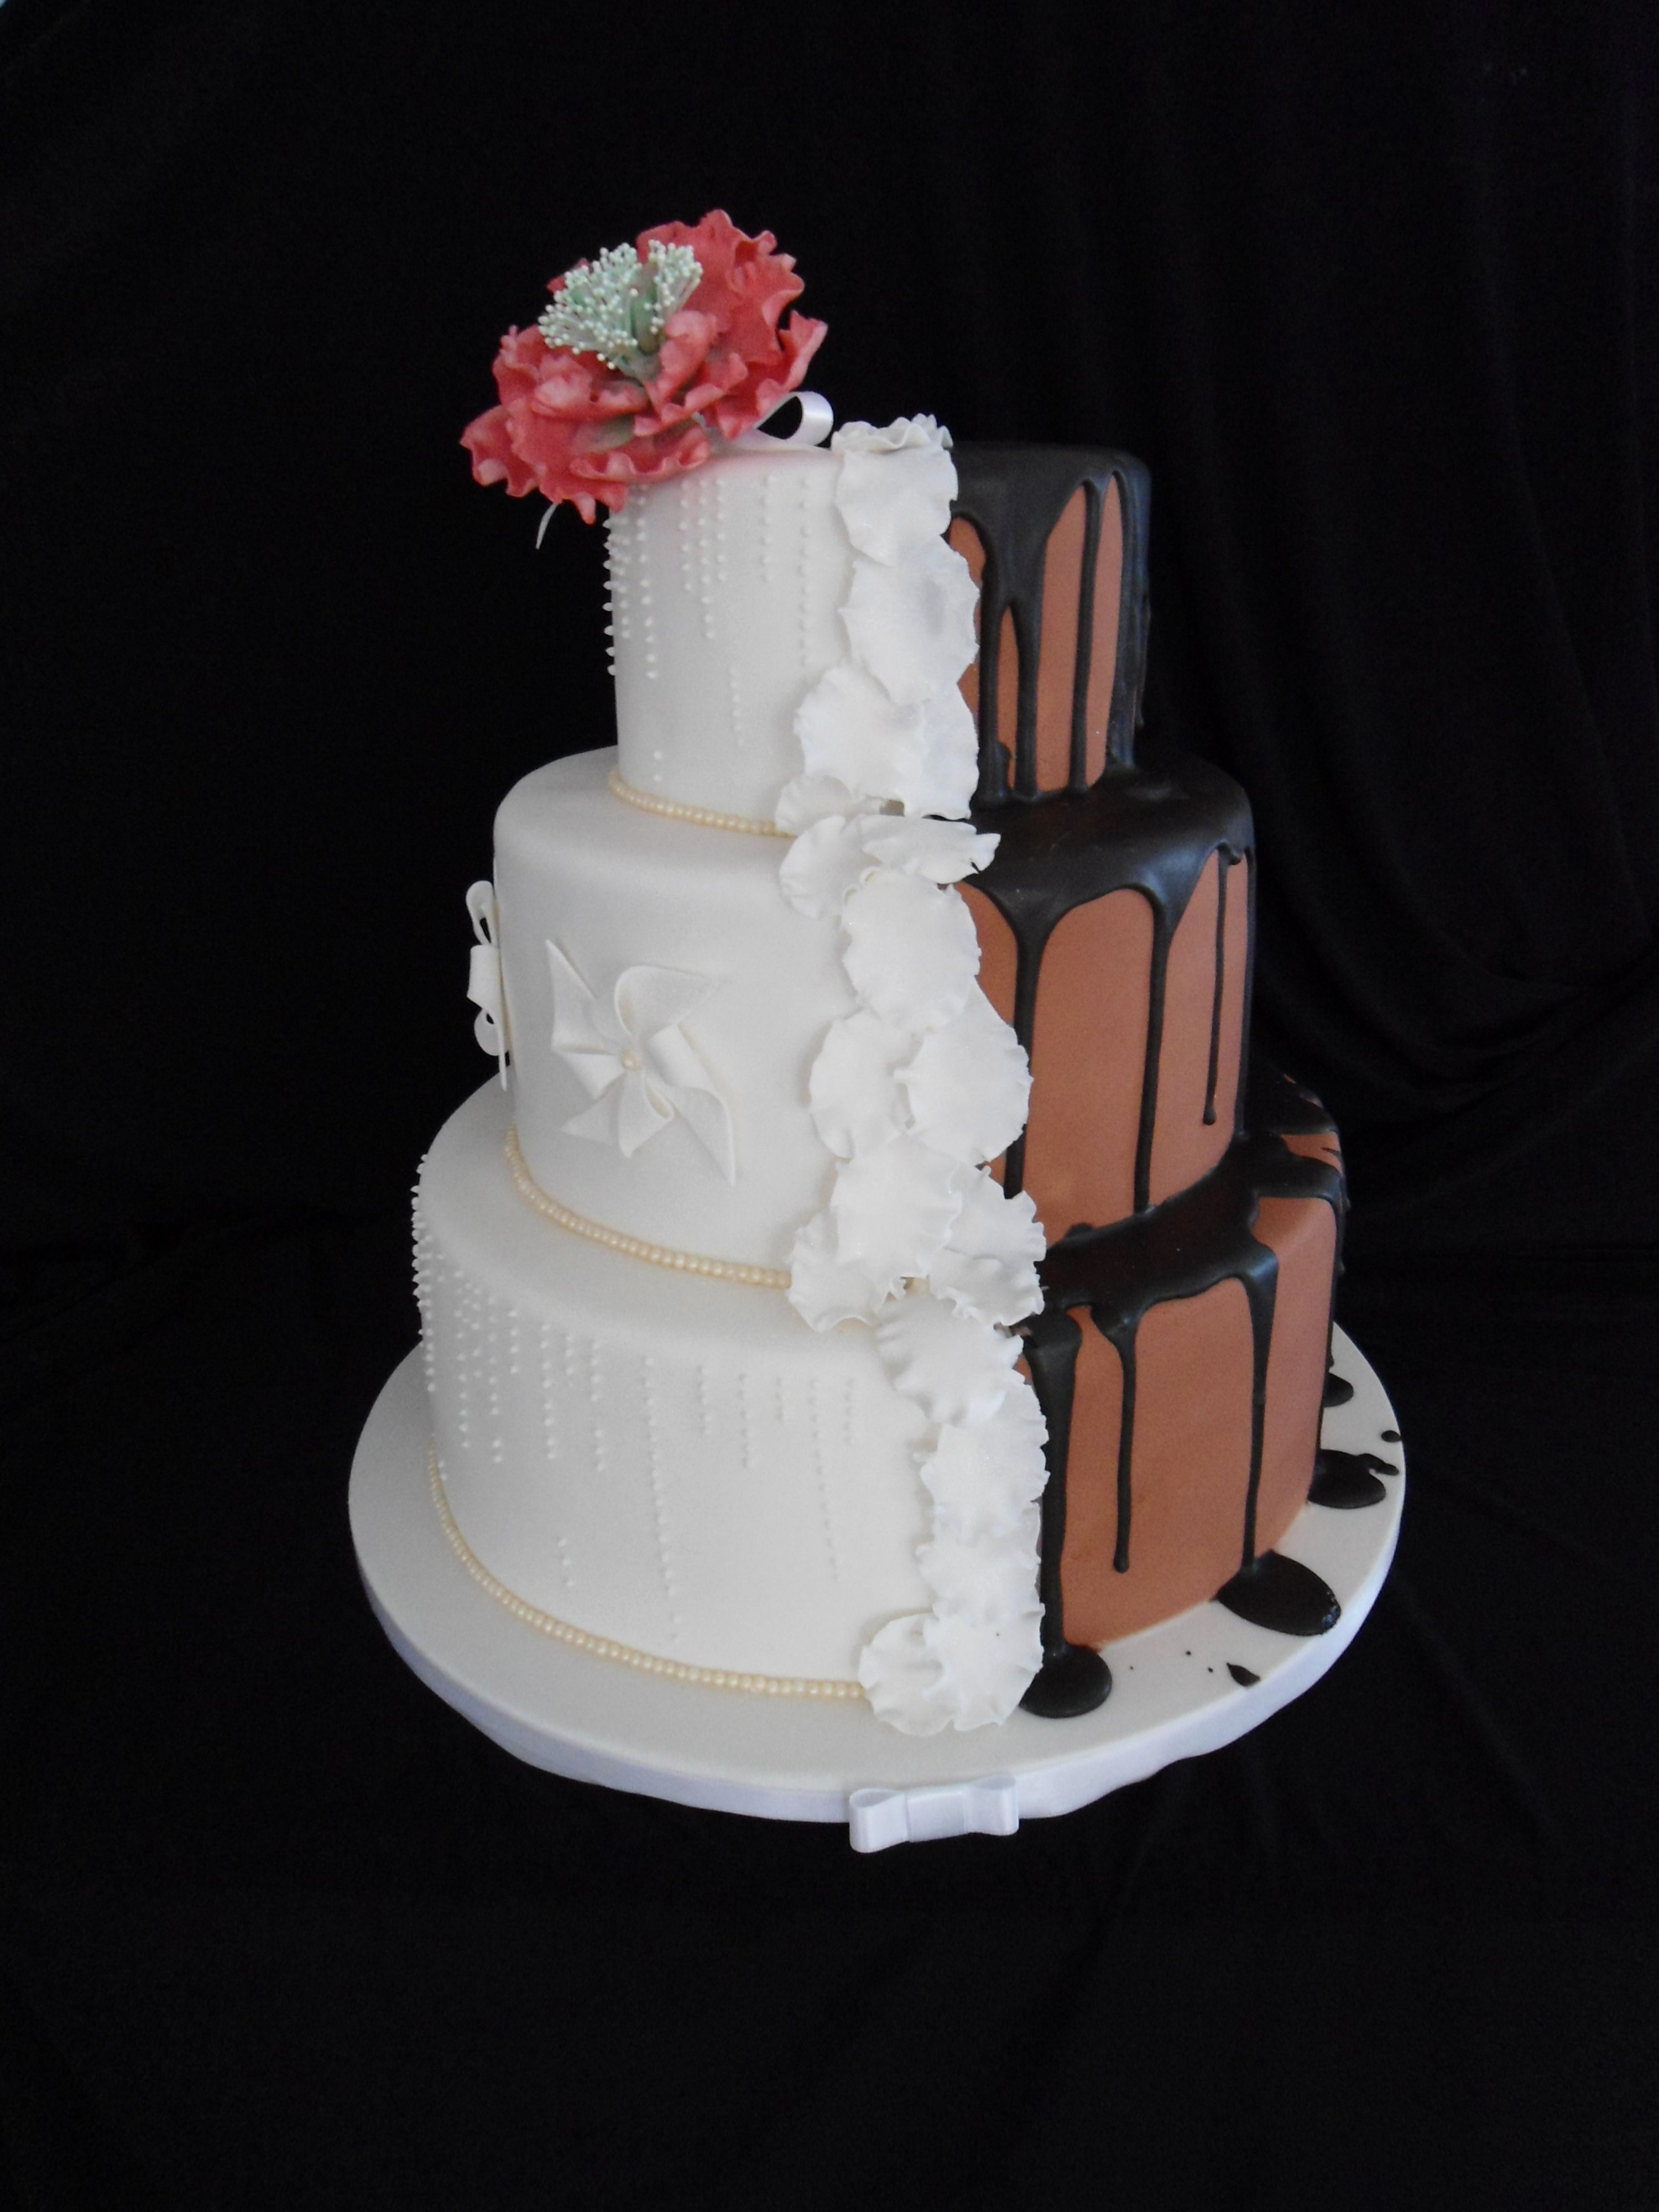 Beautiful half and half wedding cake by red apron perth perth